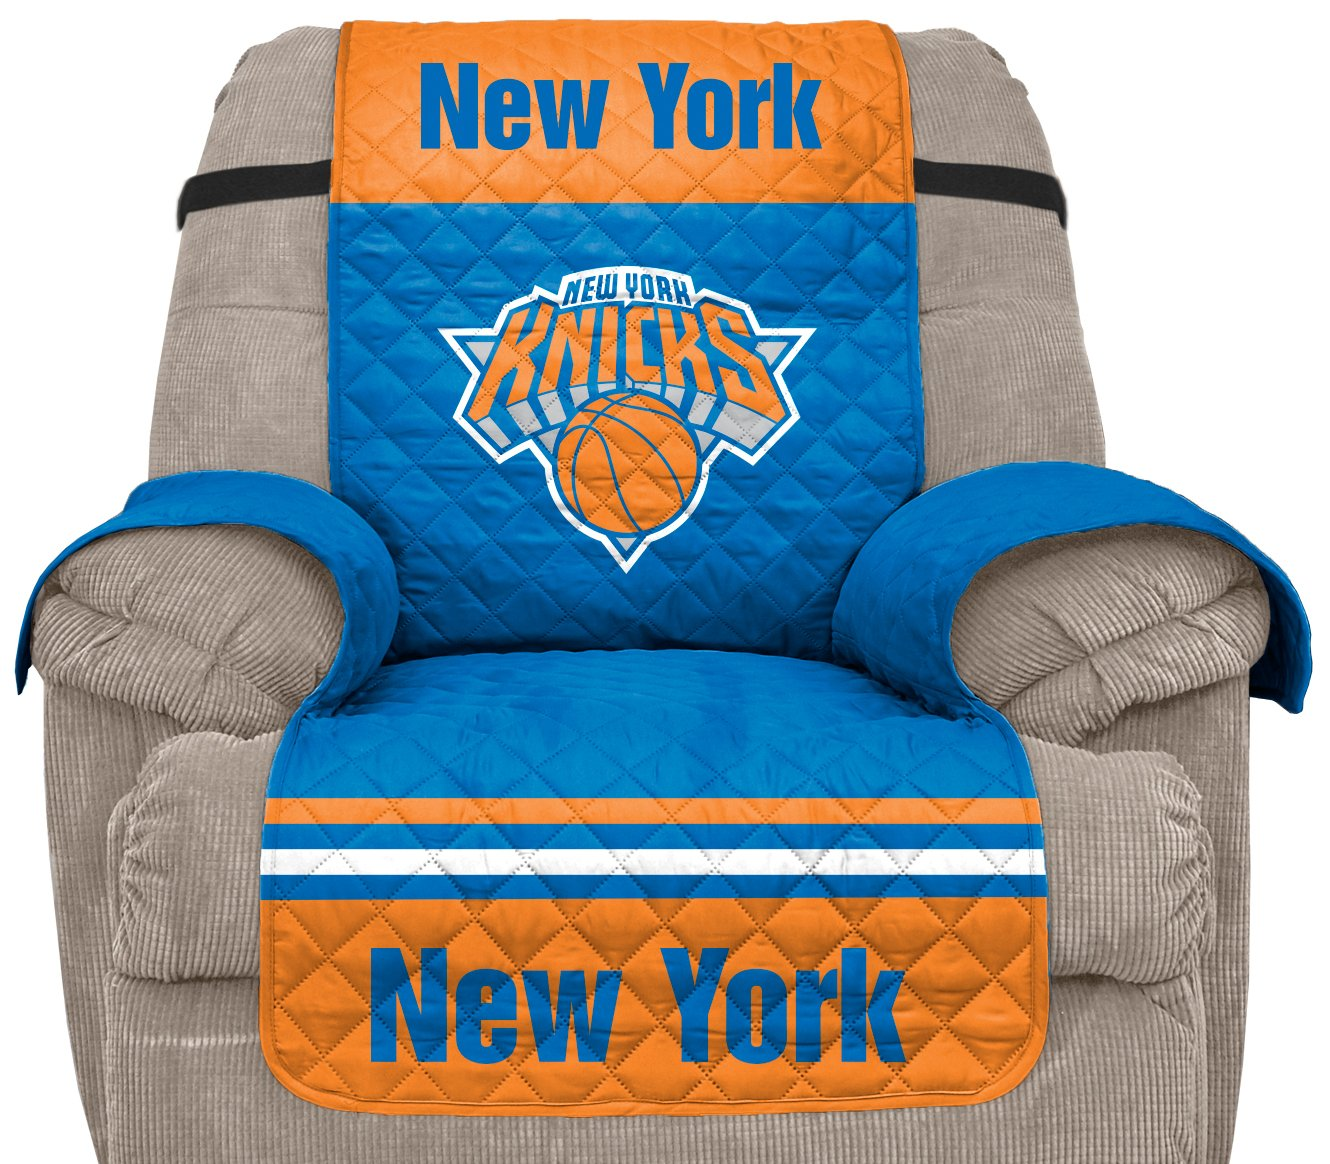 Pegasus Sports NBA New York Knicks Unisex Nbanba Furniture Protector with Elastic Straps, Blue, Recliner by Pegasus Sports